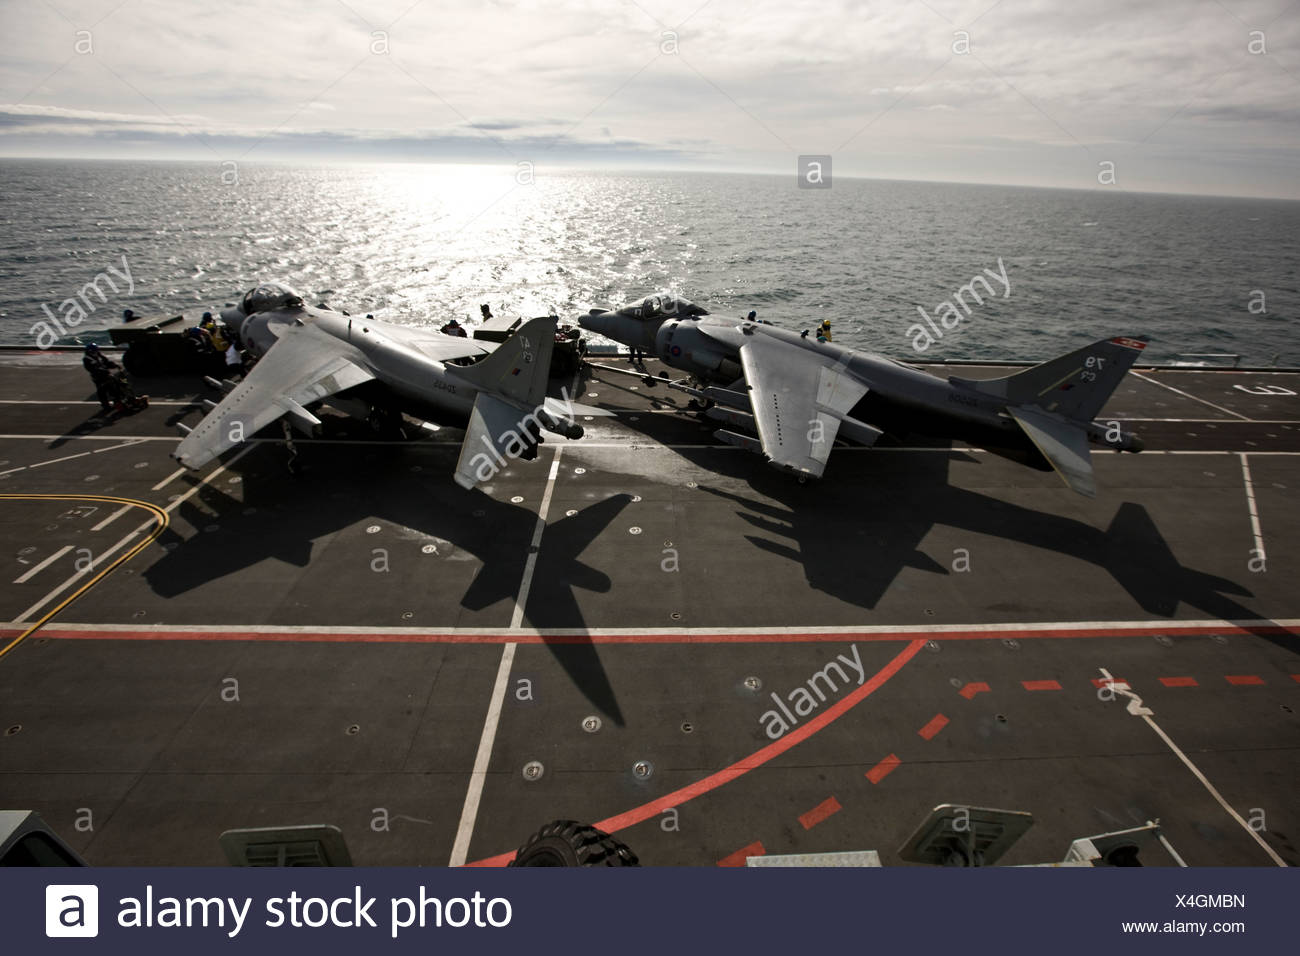 Harrier jets on naval aircraft carrier HMS Illustrius - Stock Image